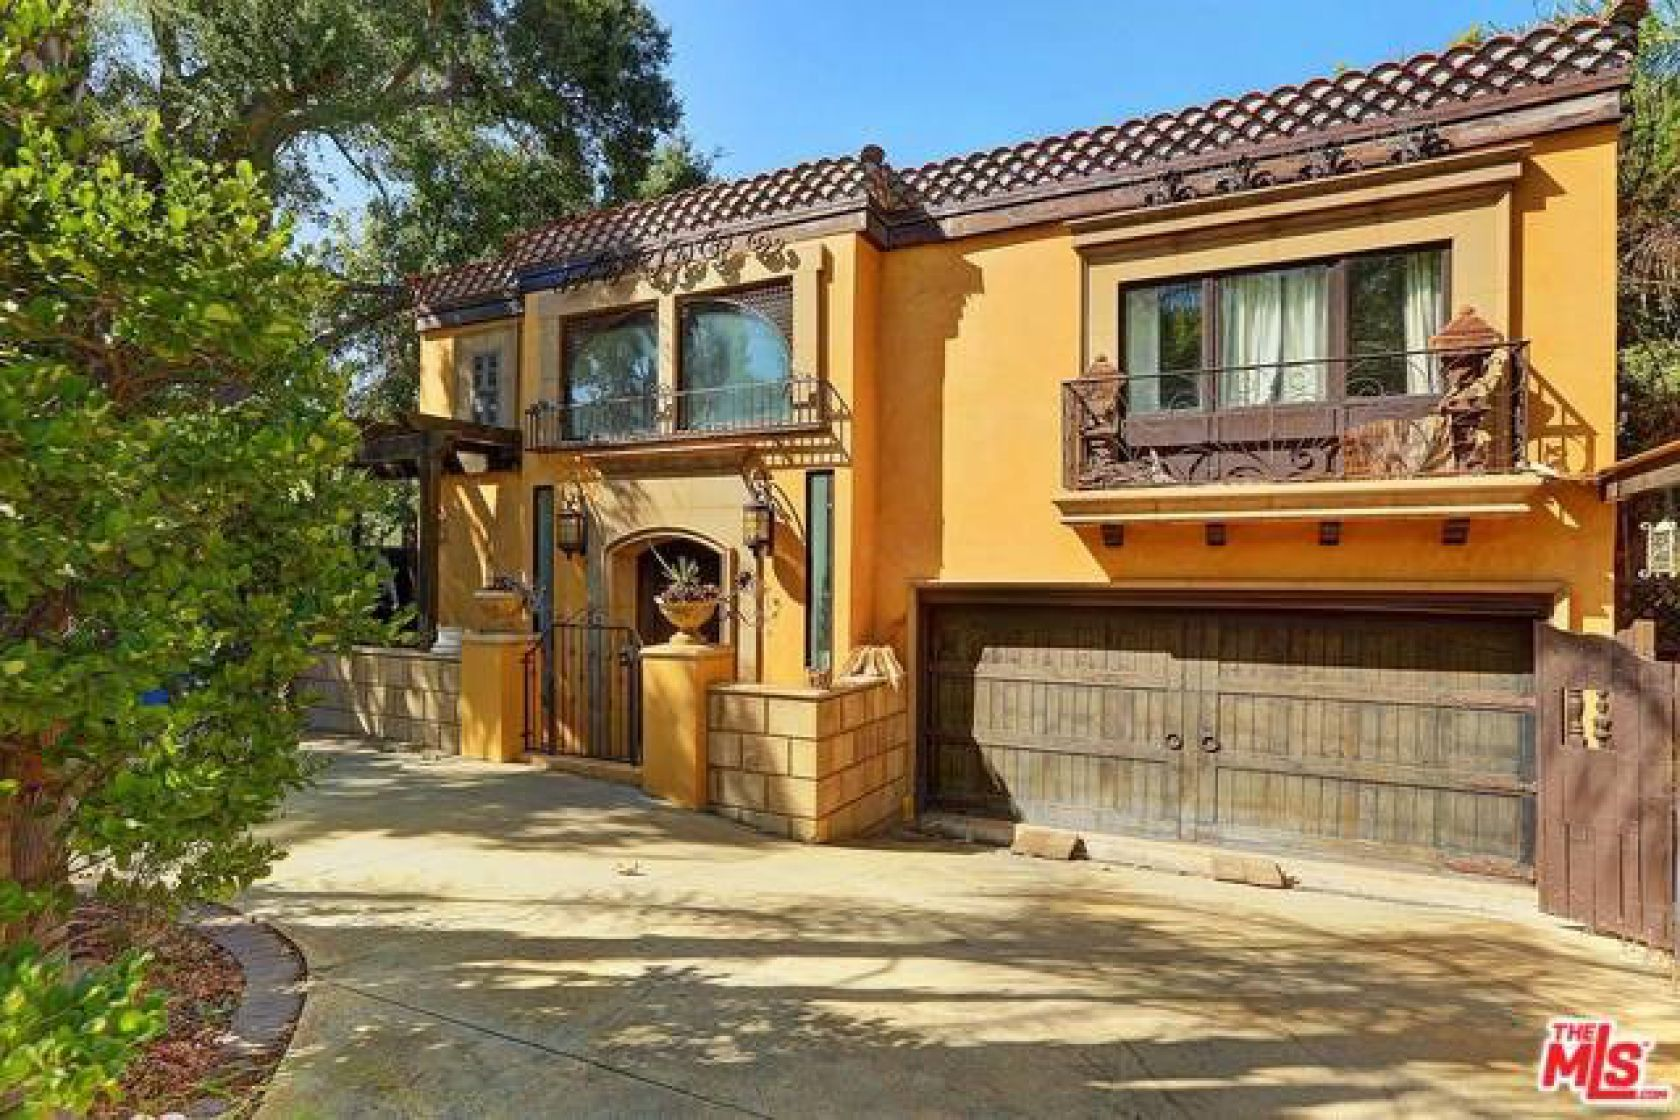 Search | Search Luxury Real Estate in Los Angeles, West